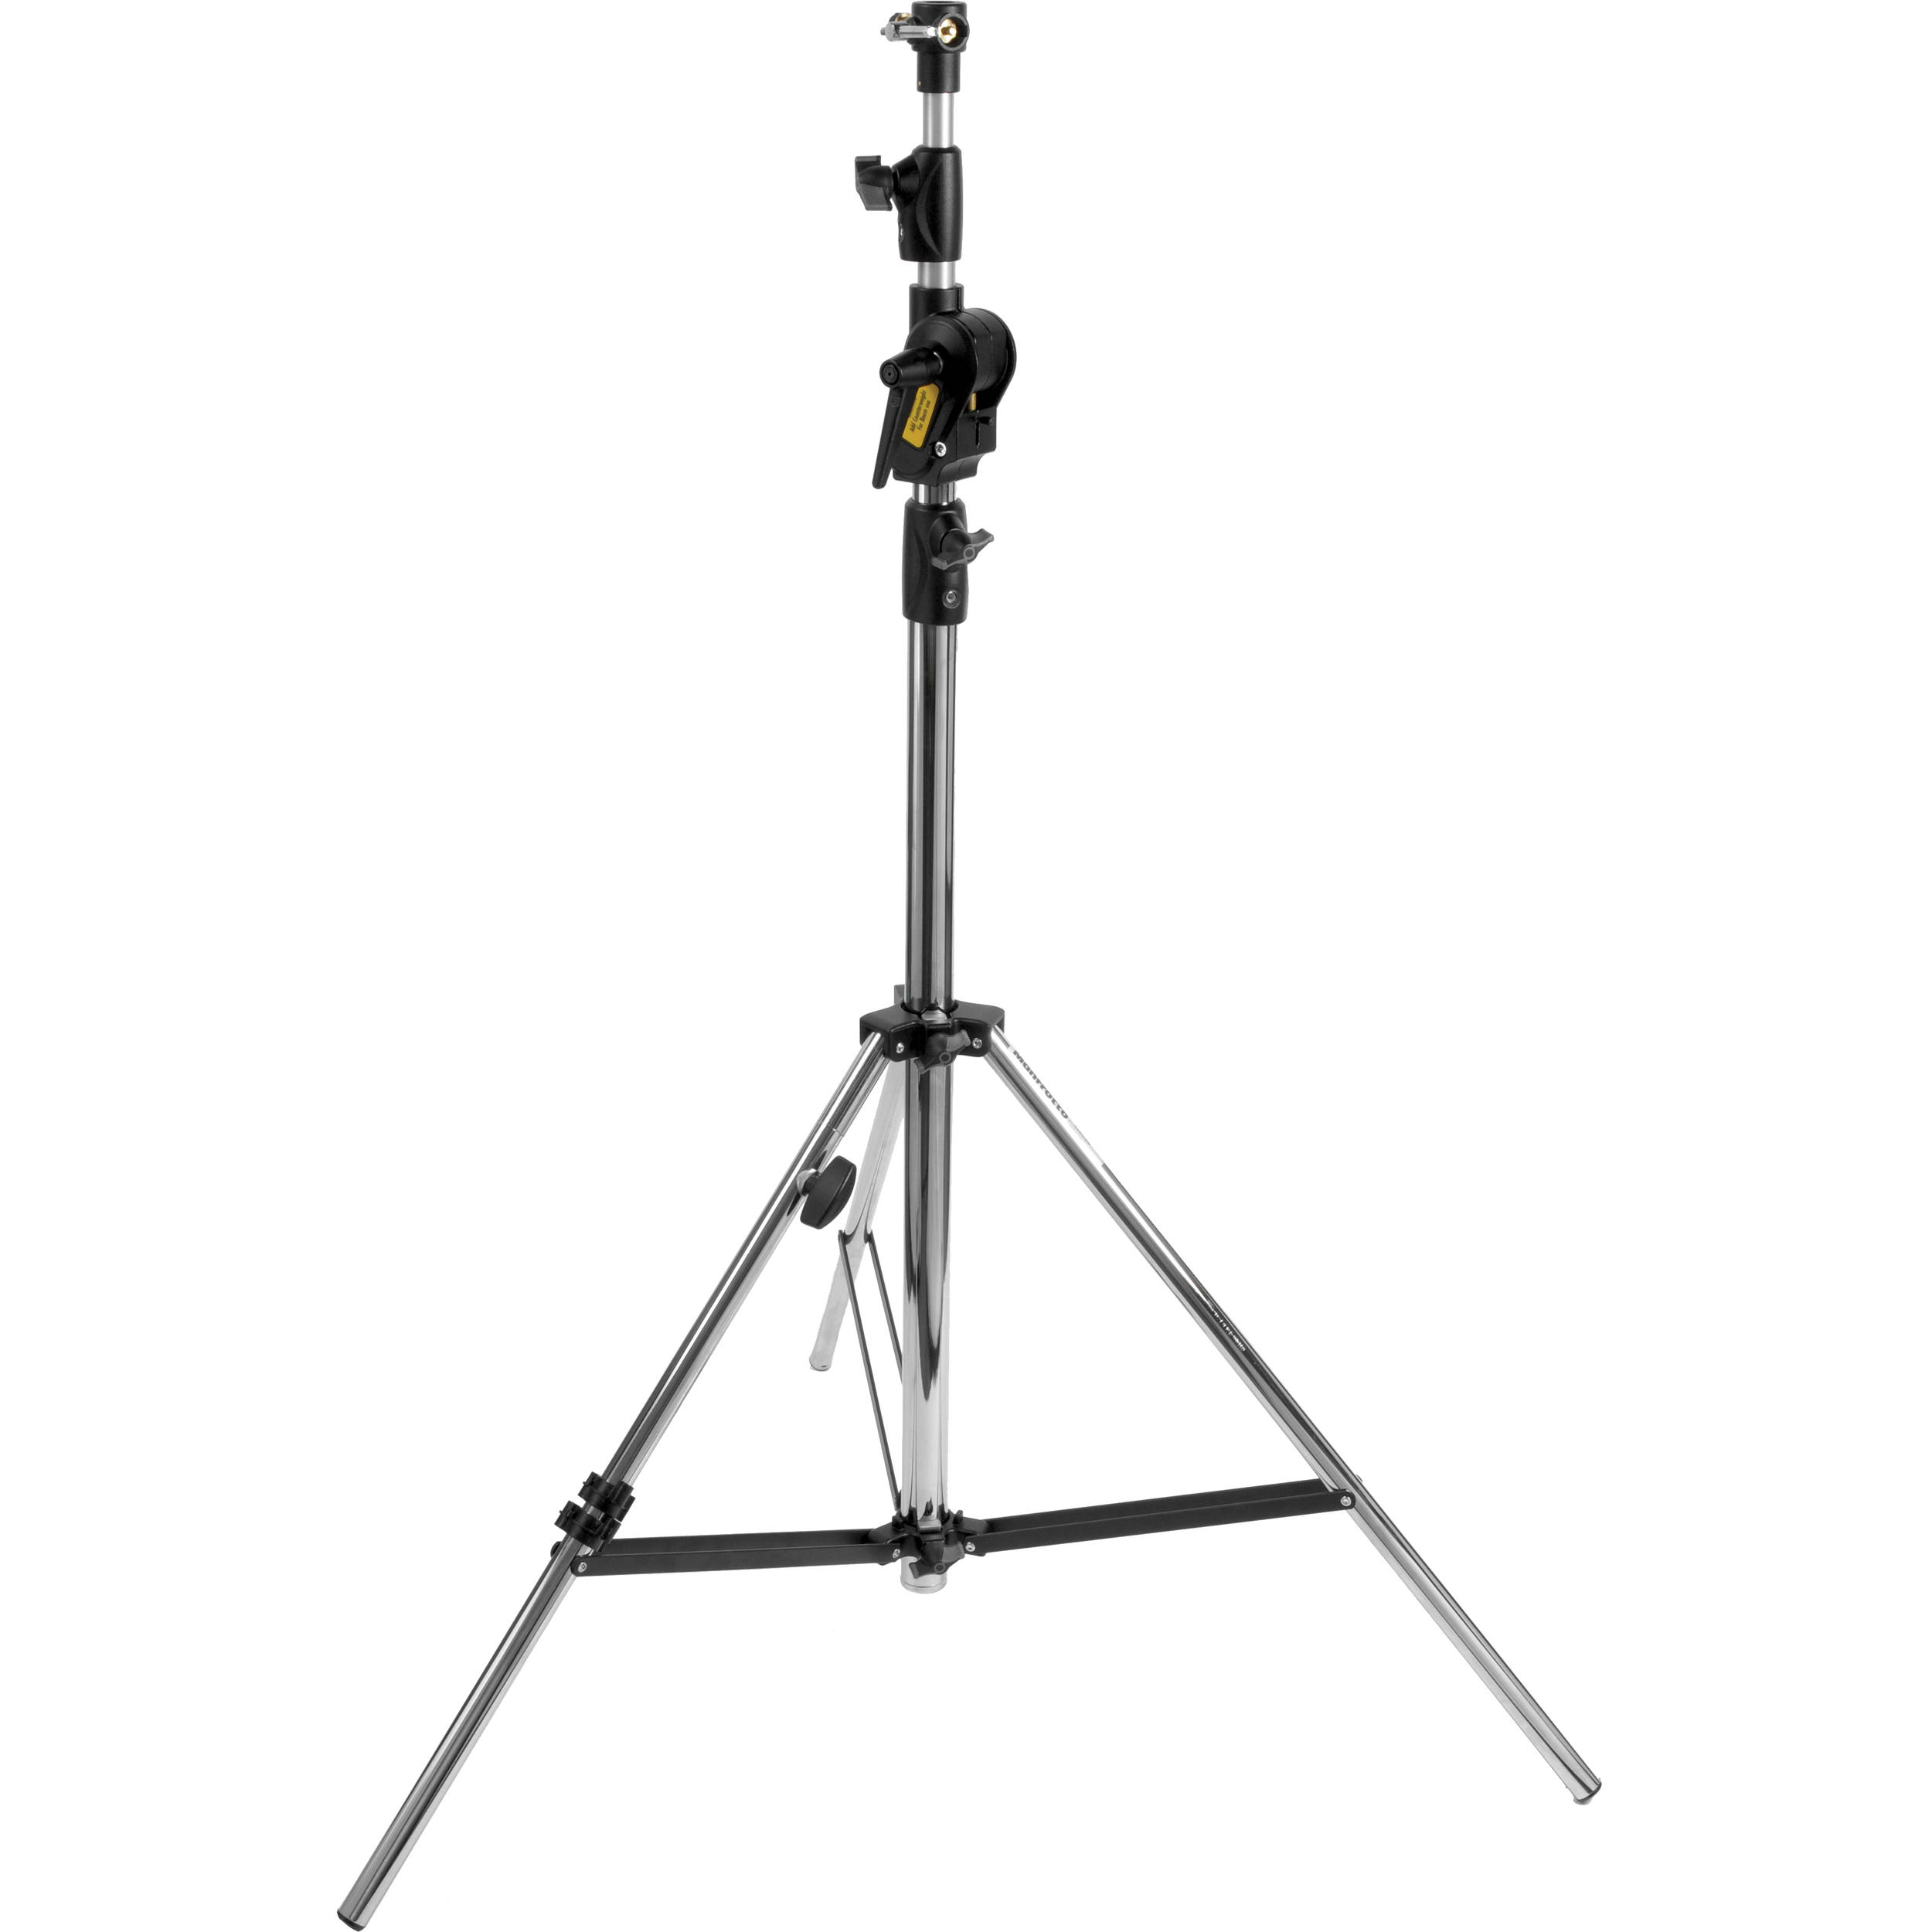 Manfrotto Combi-Boom Stand with Sand Bag (13') 420CSU B&H